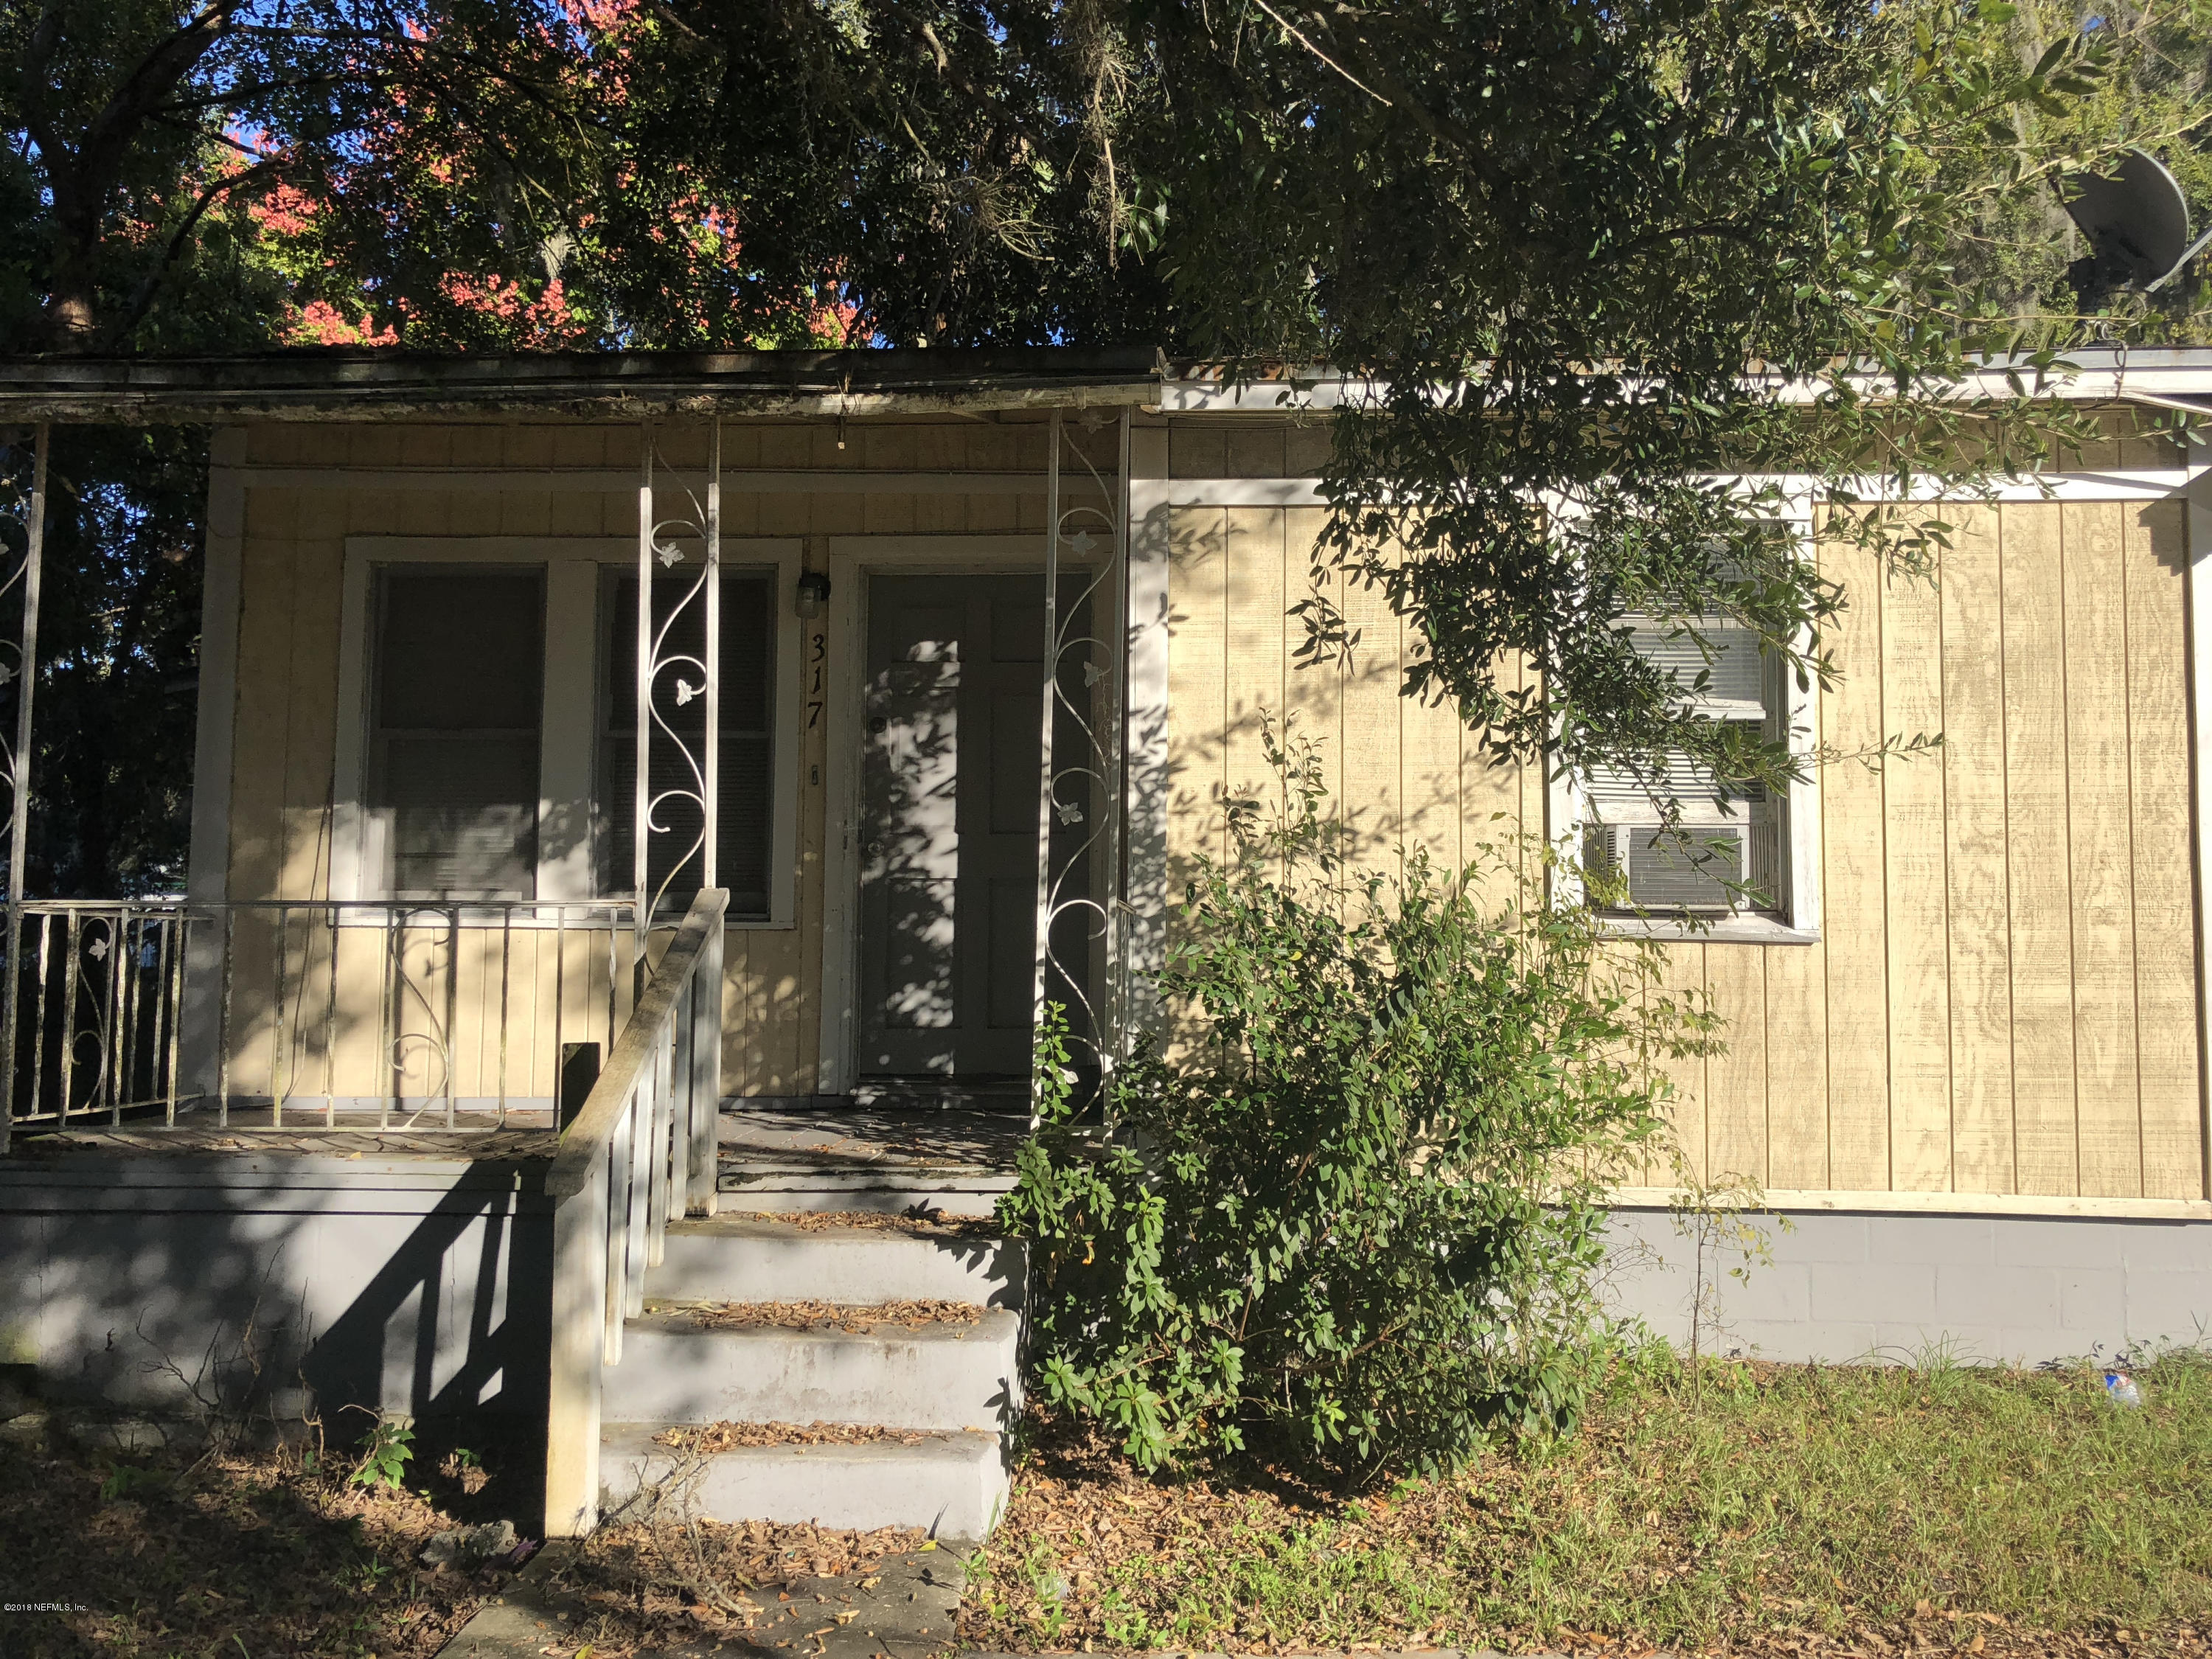 317 9TH, PALATKA, FLORIDA 32177, 3 Bedrooms Bedrooms, ,1 BathroomBathrooms,Residential - single family,For sale,9TH,965361